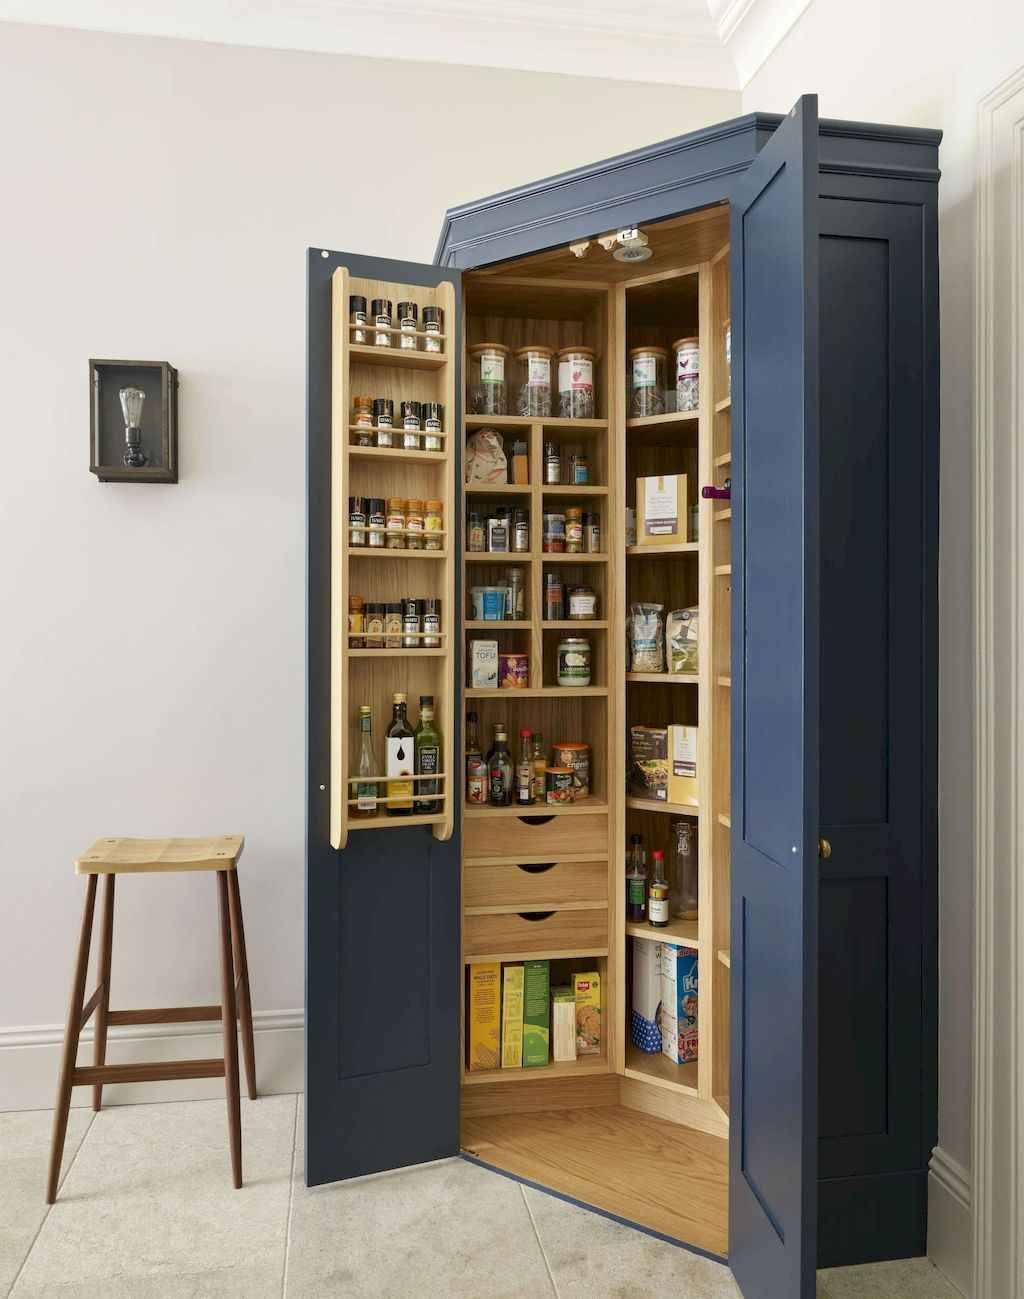 70 brilliant kitchen cabinet organization and tips ideas pantry design freestanding kitchen on kitchen cabinets pantry id=75320